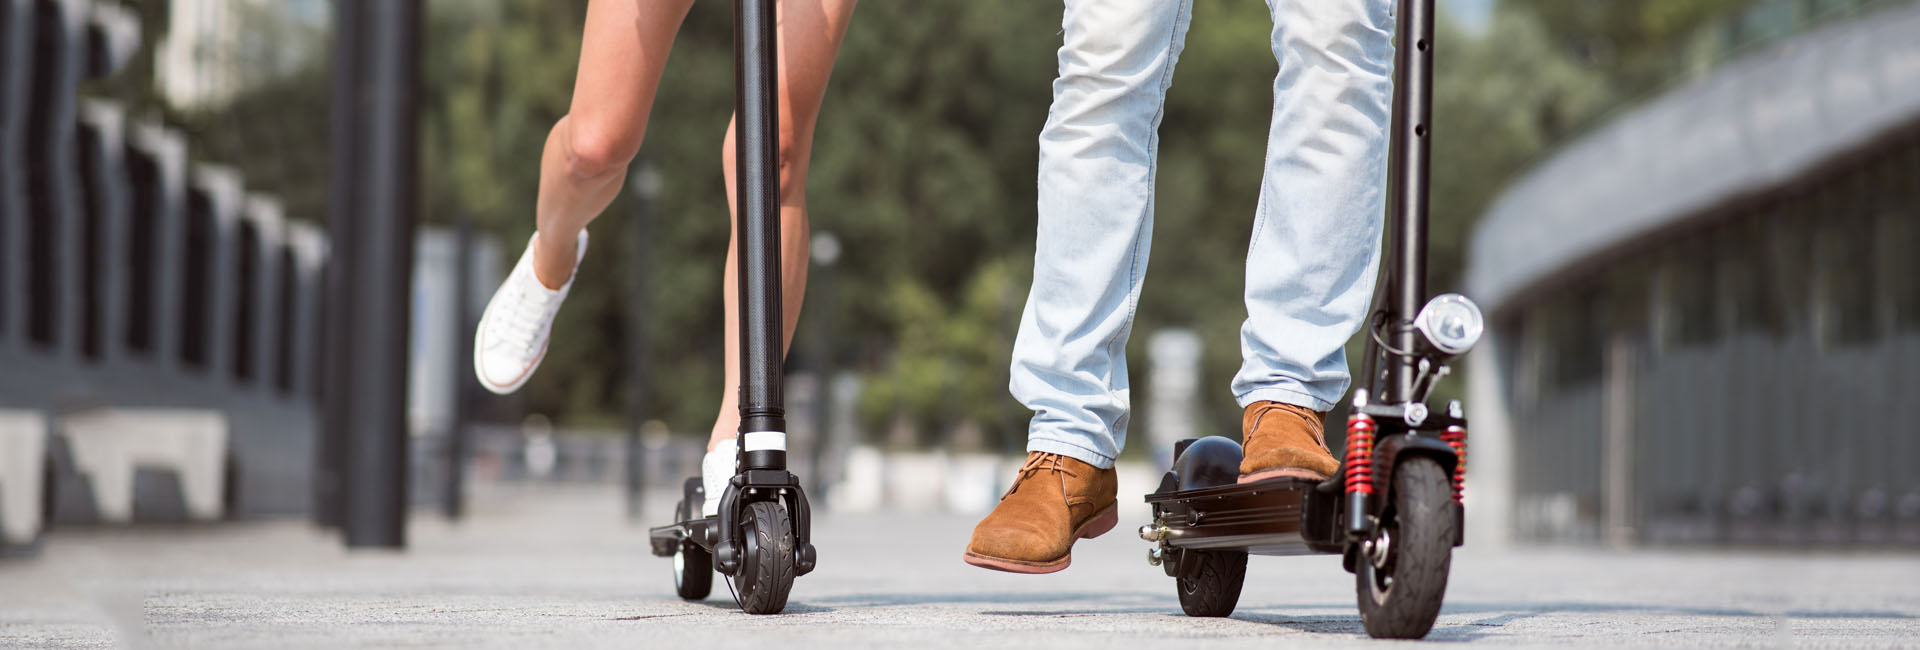 0 lime electric scooter rentals in nuevo vallarta